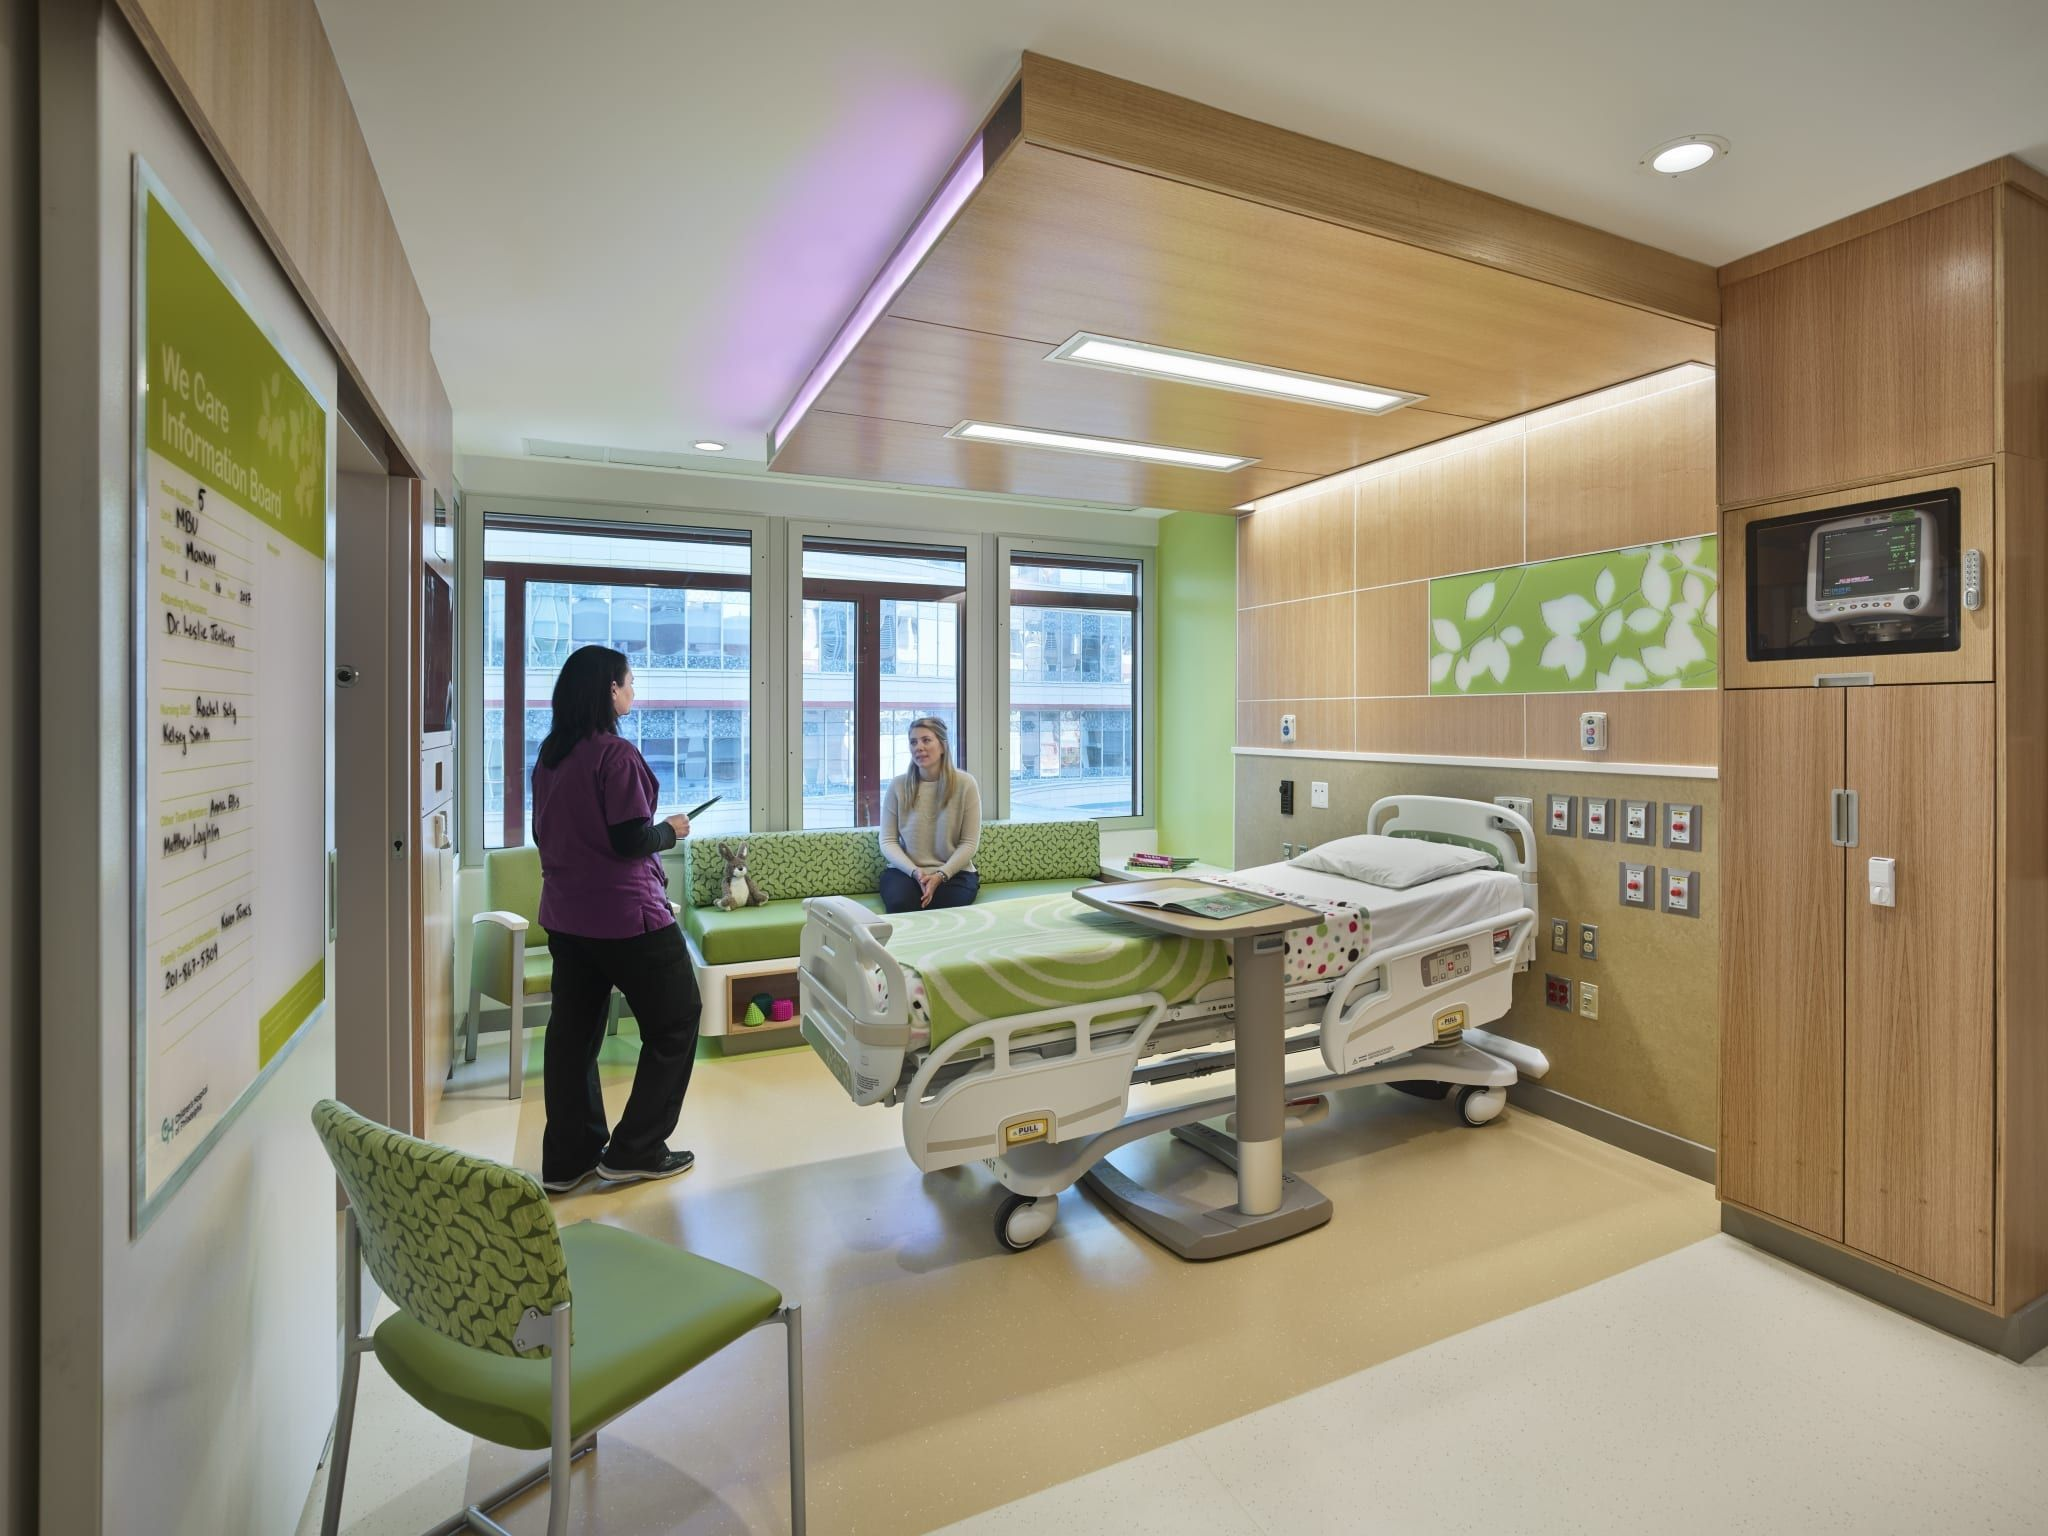 Children S Hospital Of Philadelphia Medical Behavioral Unit Zgf Healthcare Interior Design Hospital Design Lobby Interior Design